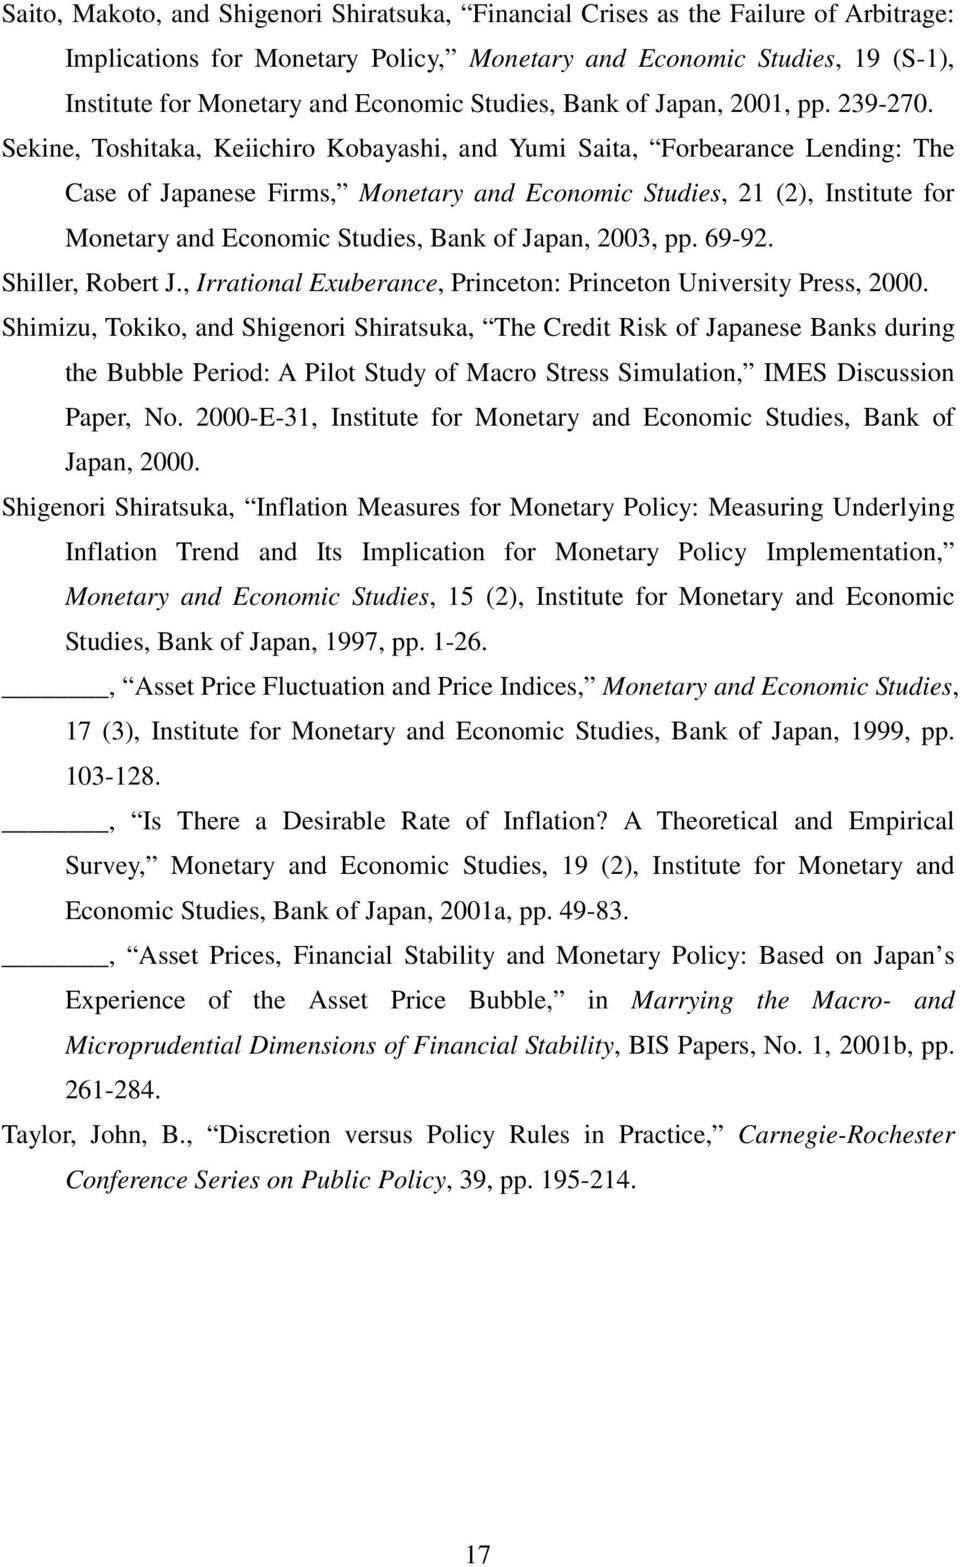 Sekine, Toshitaka, Keiichiro Kobayashi, and Yumi Saita, Forbearance Lending: The Case of Japanese Firms, Monetary and Economic Studies, 21 (2), Institute for Monetary and Economic Studies, Bank of